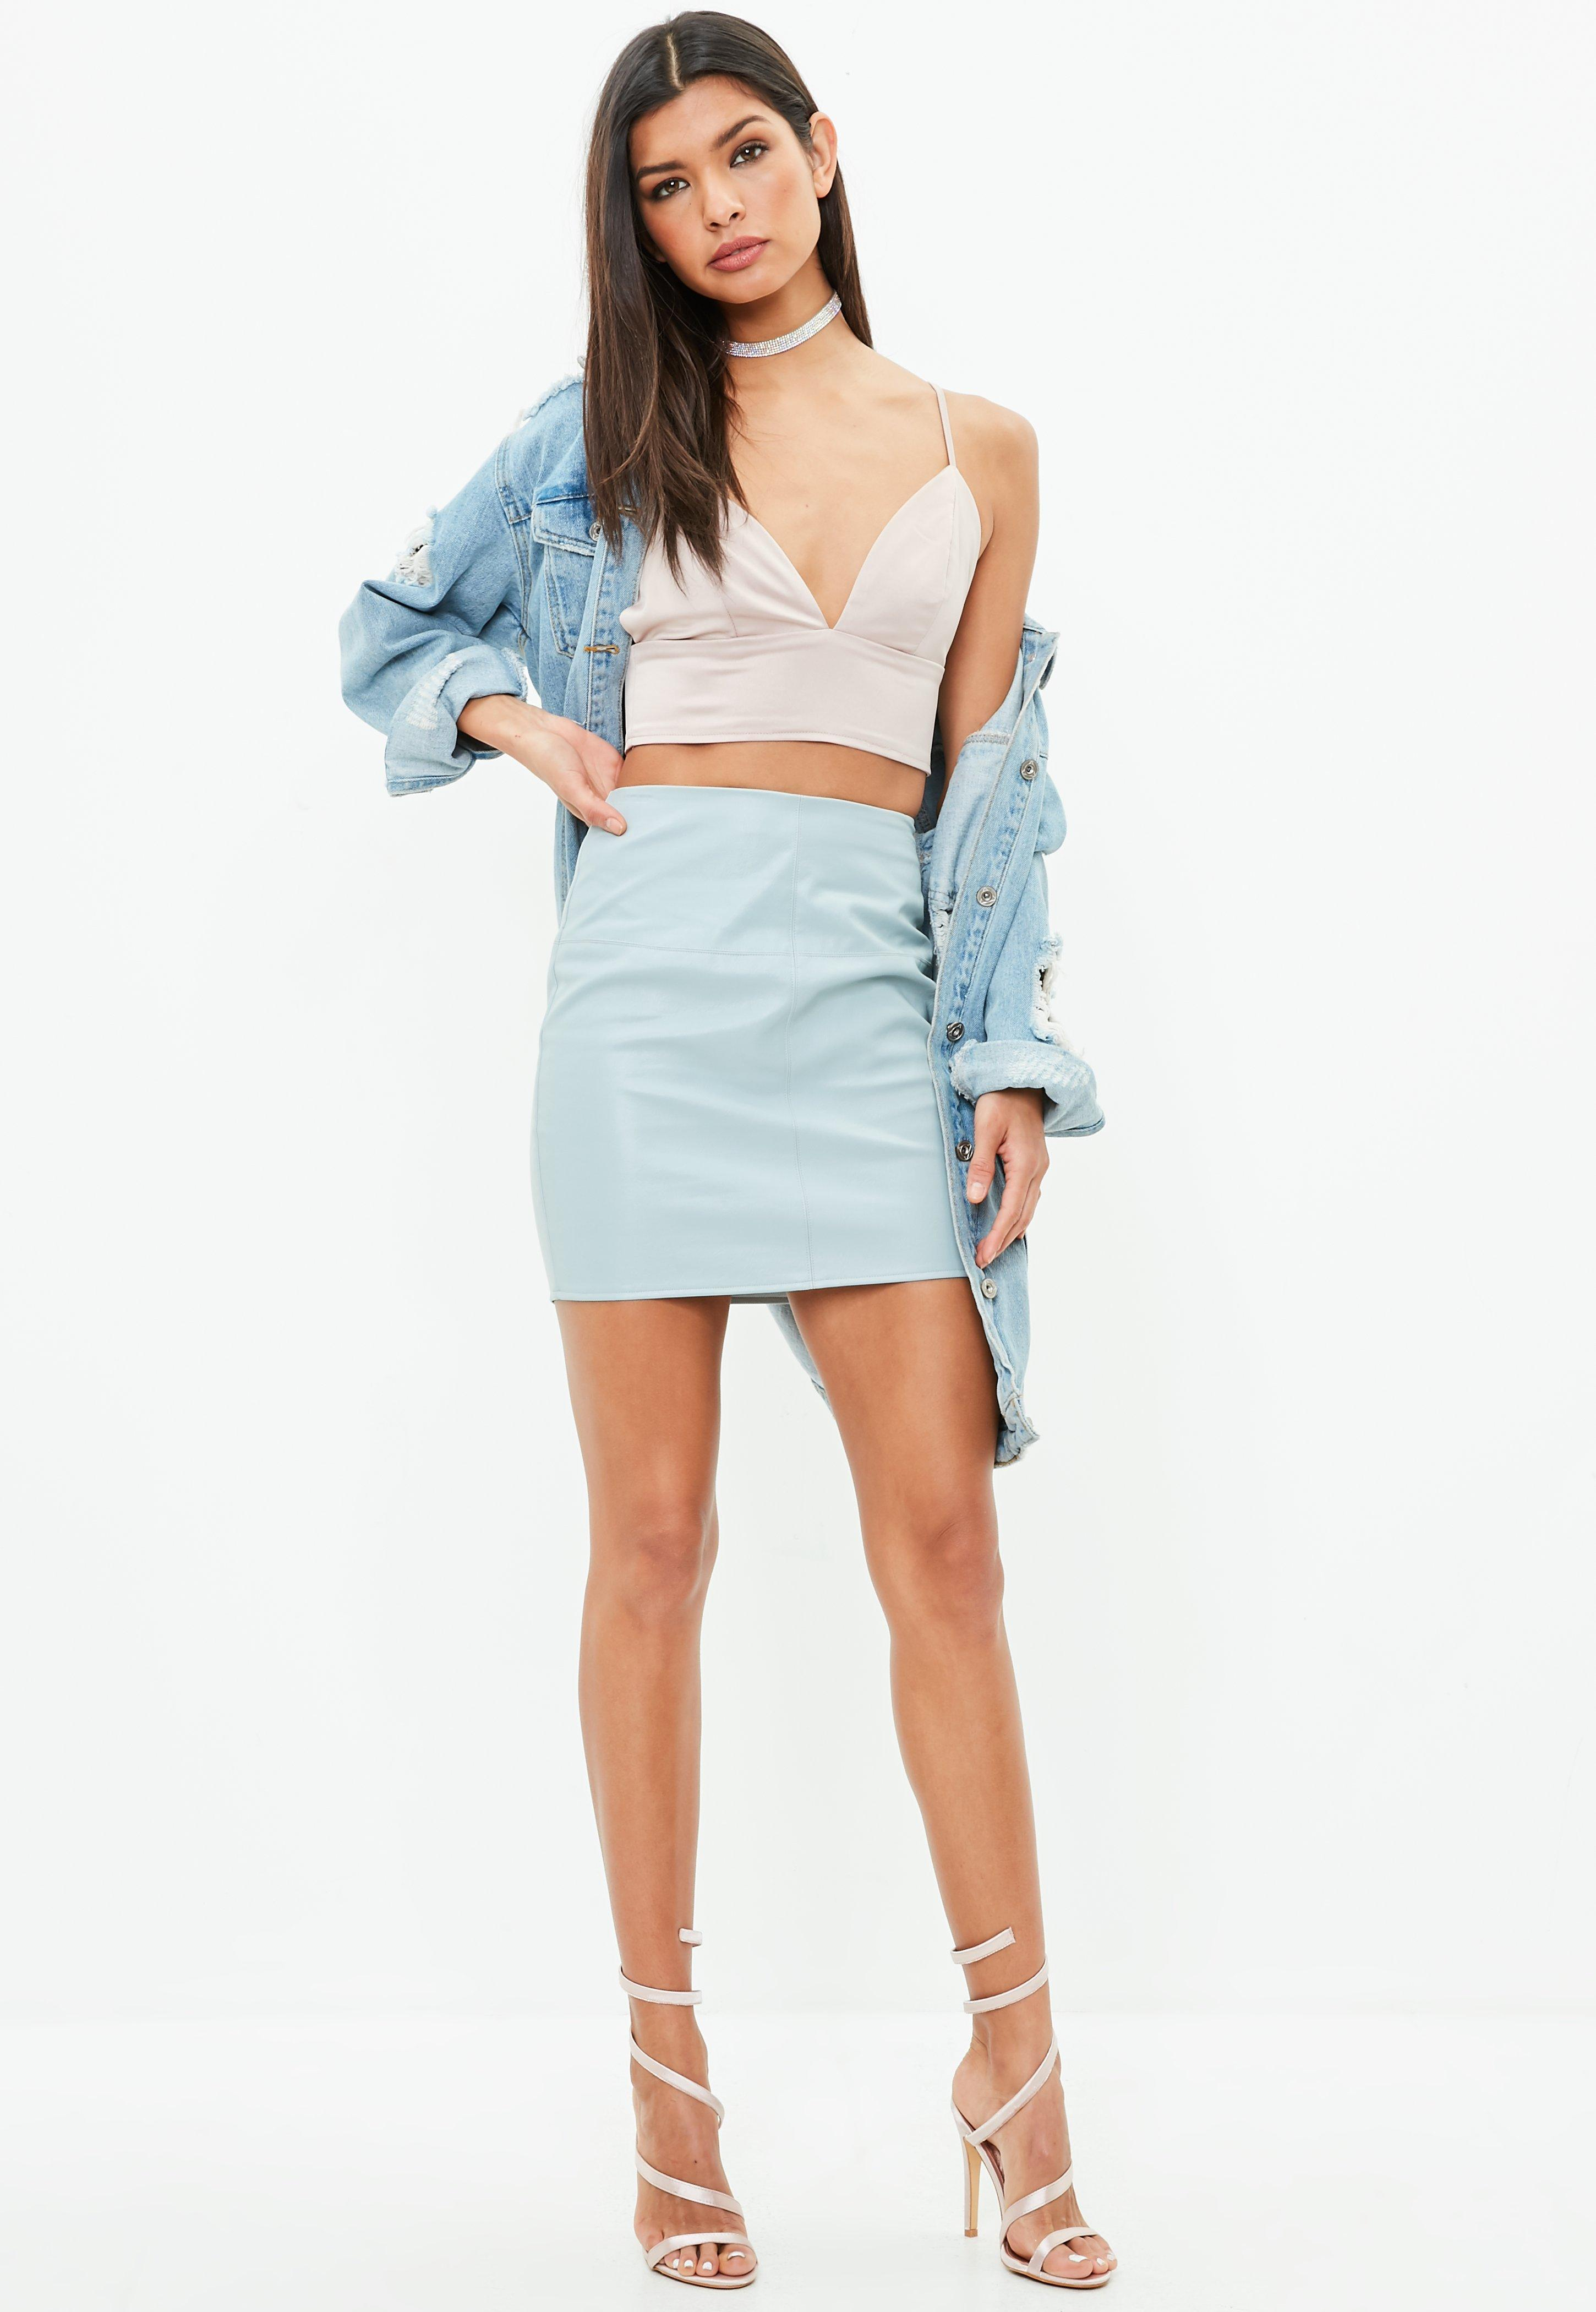 I live in Canada so shipping is either one of two things.. or both. Its either: 1. Super expensive or 2. Takes way too long. Missguided happened to be both. I paid for express shipping, and the company that they use for shipping charges A LOT for customs in Canada.